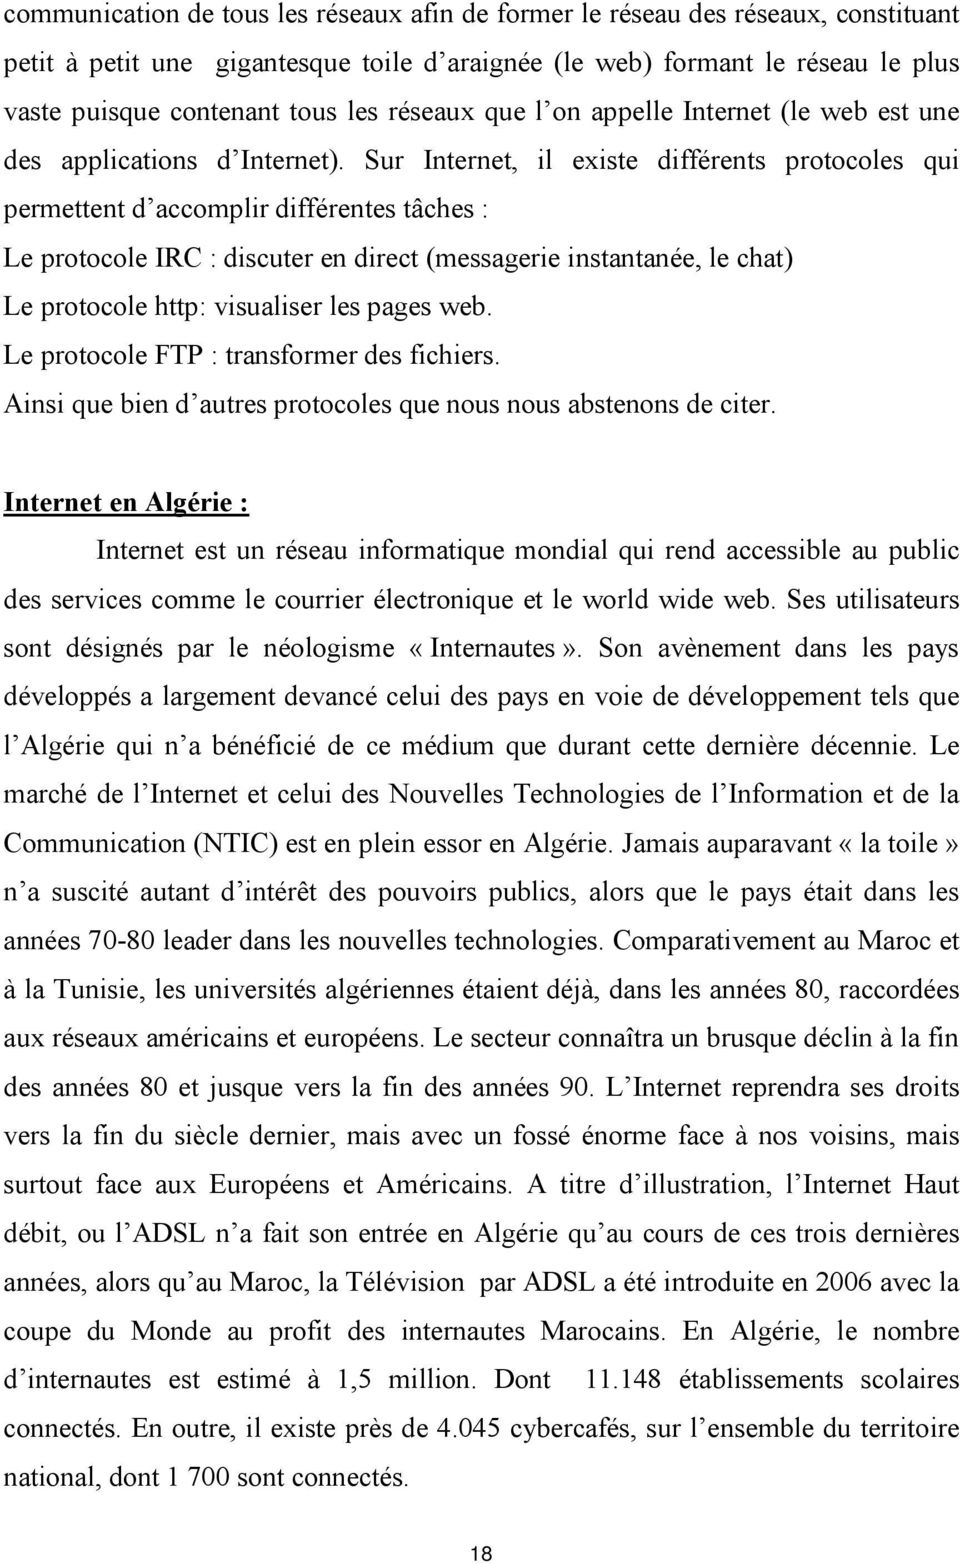 Sur Internet, il existe différents protocoles qui permettent d accomplir différentes tâches : Le protocole IRC : discuter en direct (messagerie instantanée, le chat) Le protocole http: visualiser les